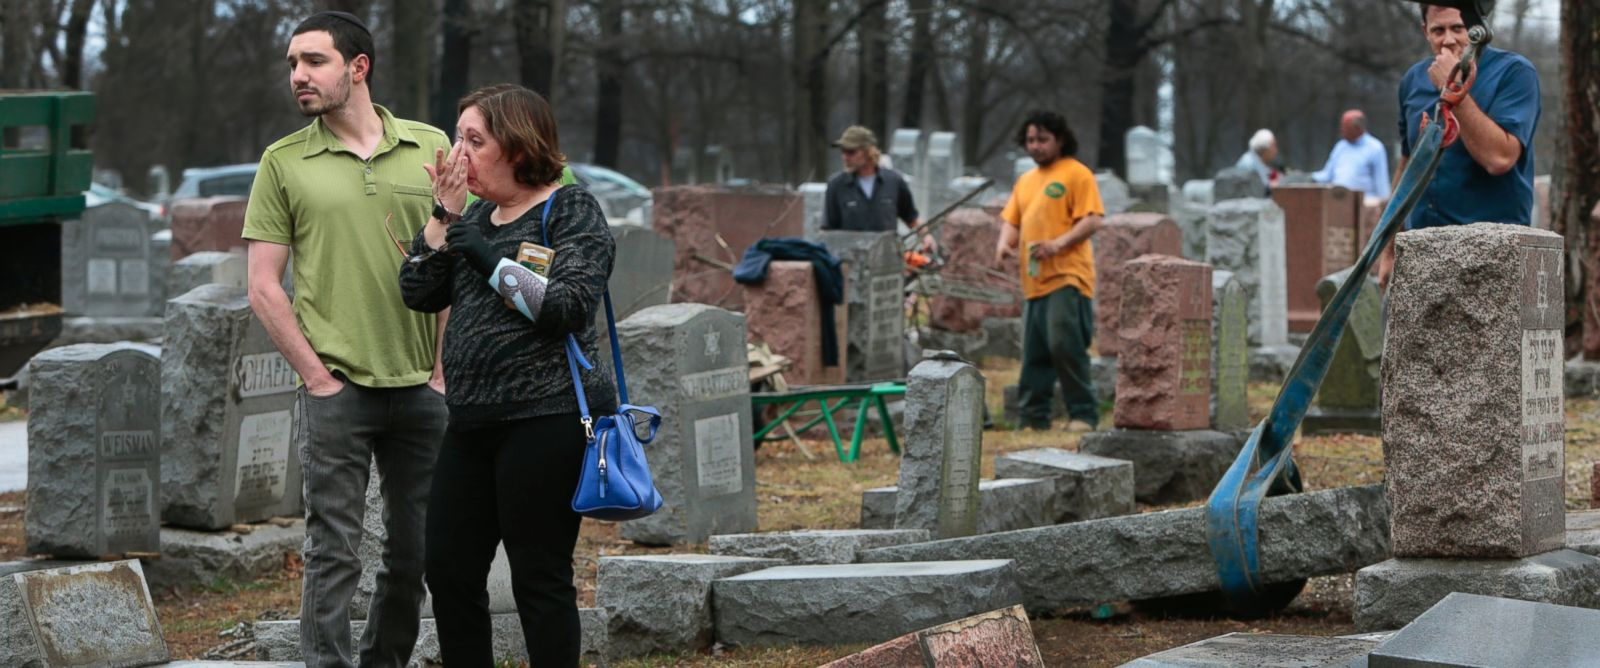 http://www.abccolumbia.com/wp-content/uploads/2017/02/Muslim-activists-raise-over-70000-to-aid-vandalized-Jewish-cemetery.jpg